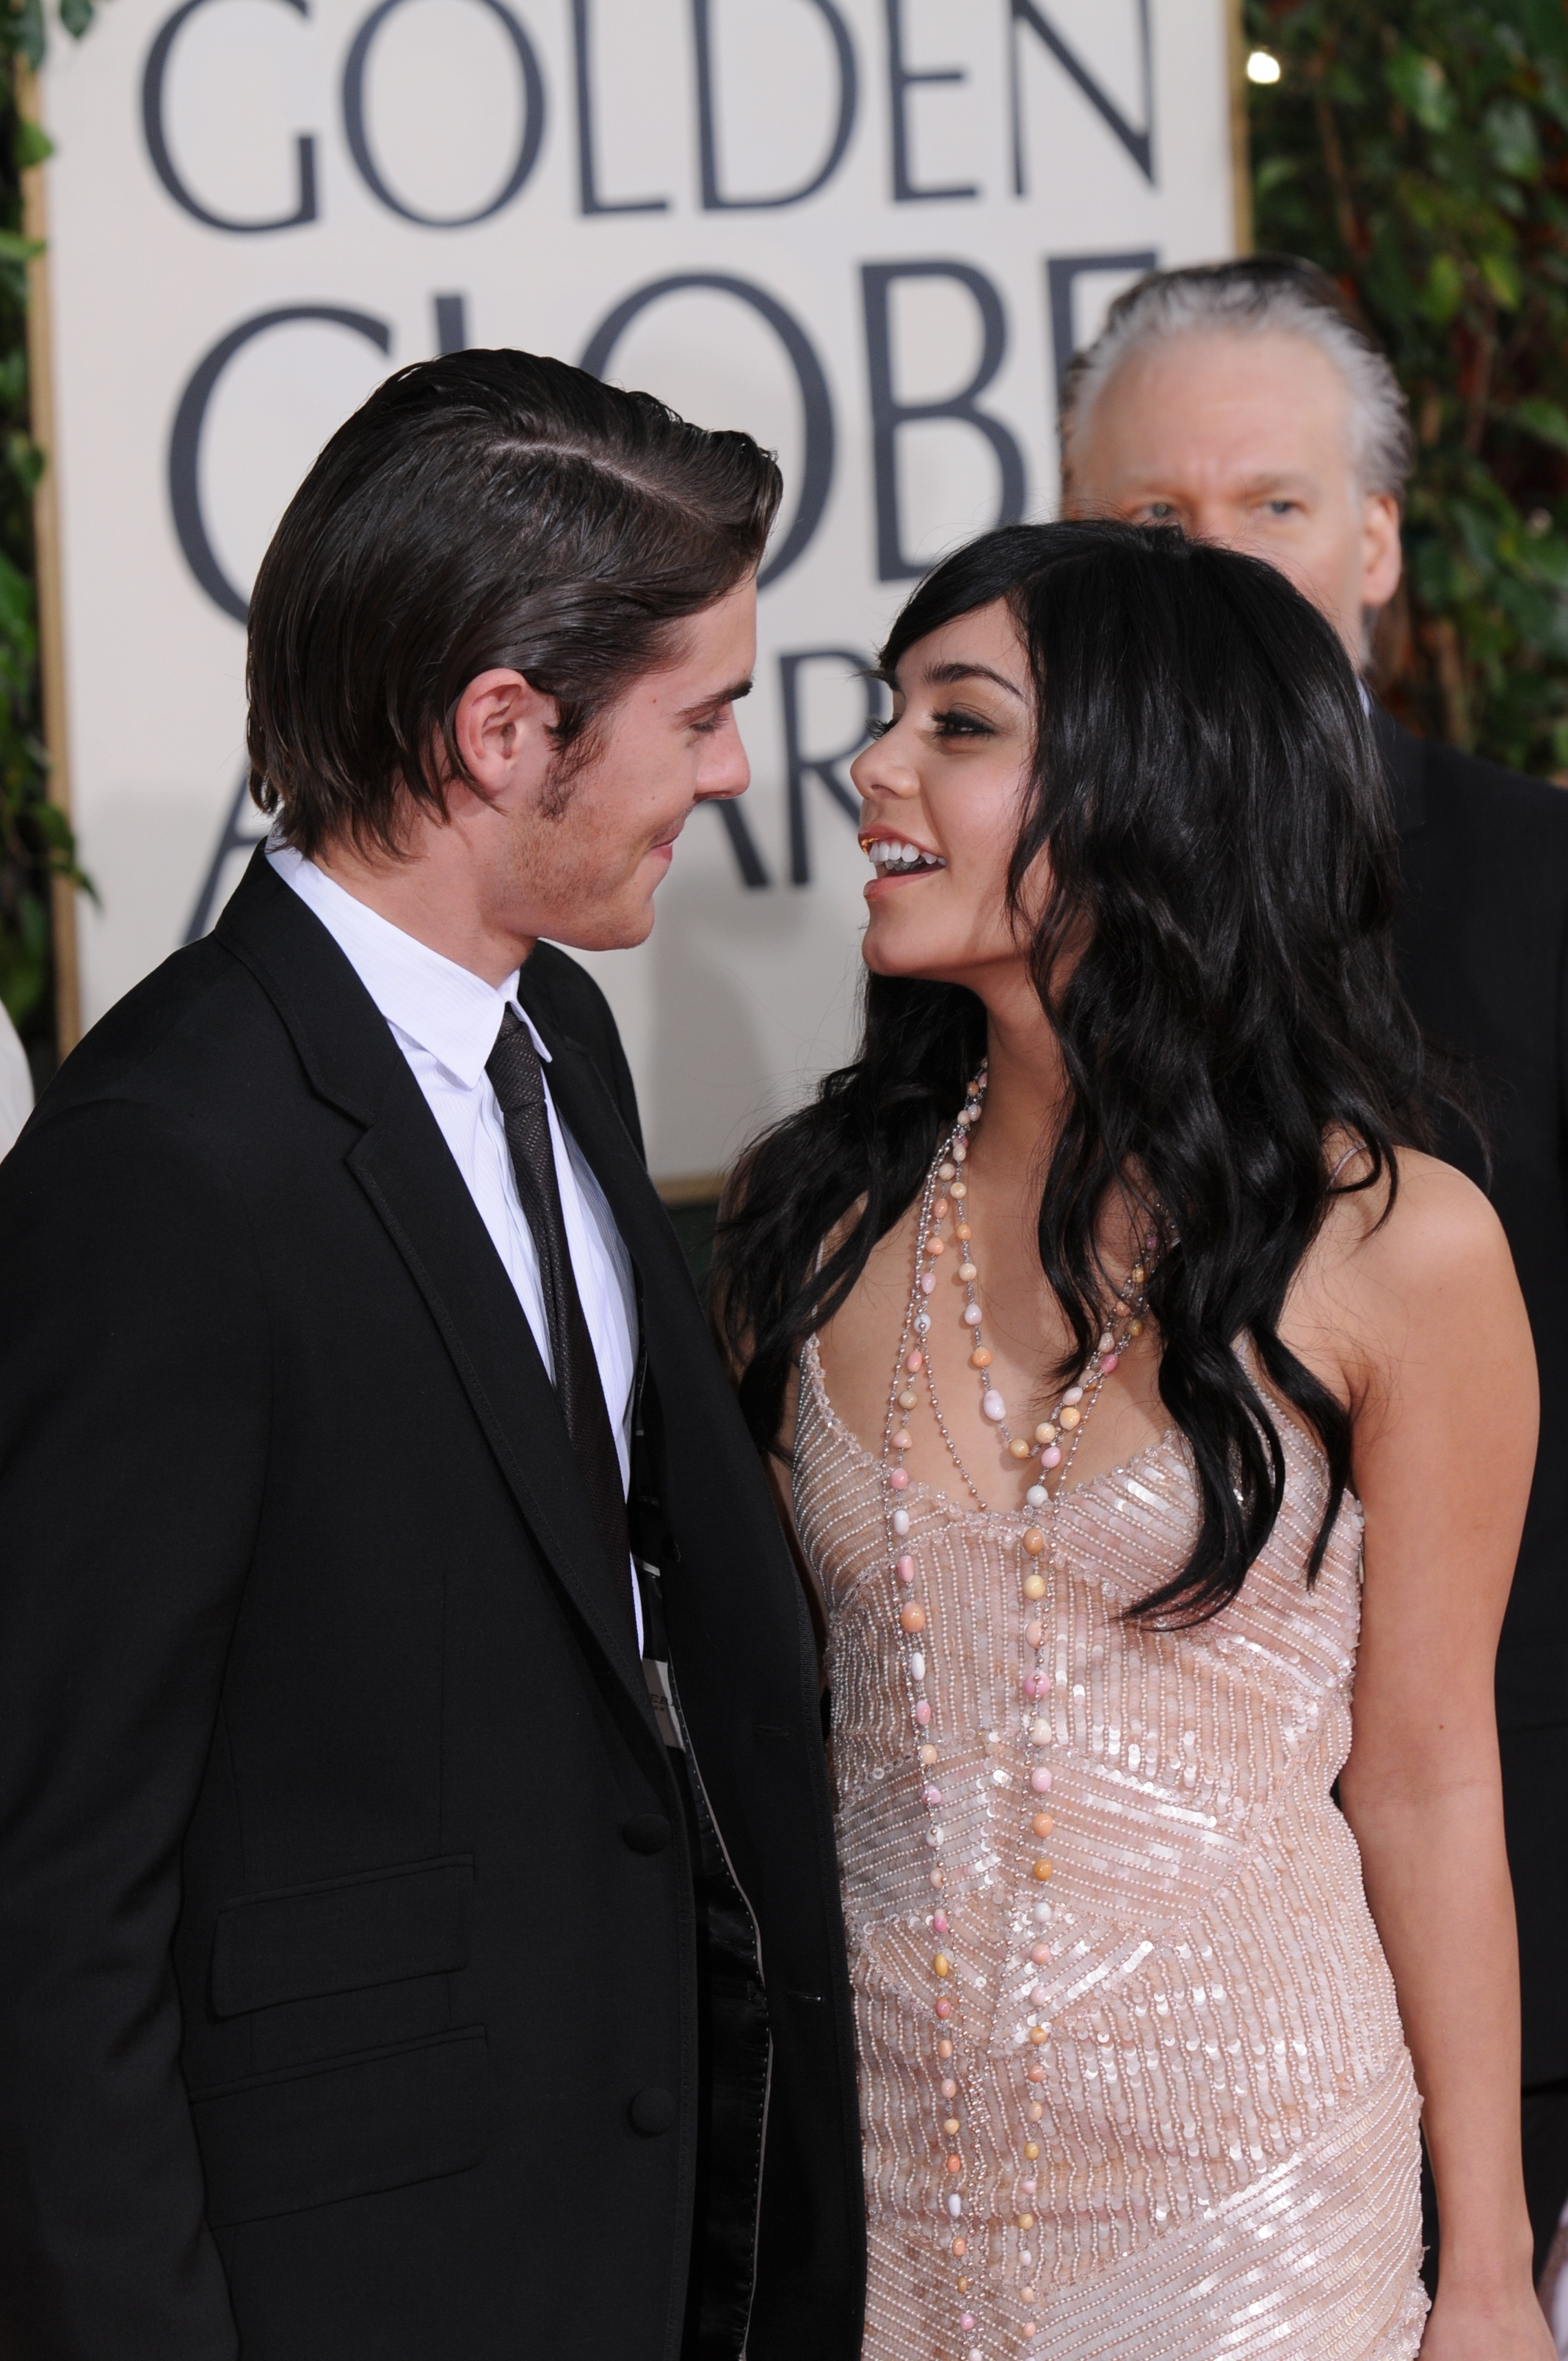 Zac Efron and Vanessa Hudgens attend The 66th Annual Golden Globe Awards, Arrivals, Beverly Hilton Hotel in Los Angeles on Jan. 11, 2009.